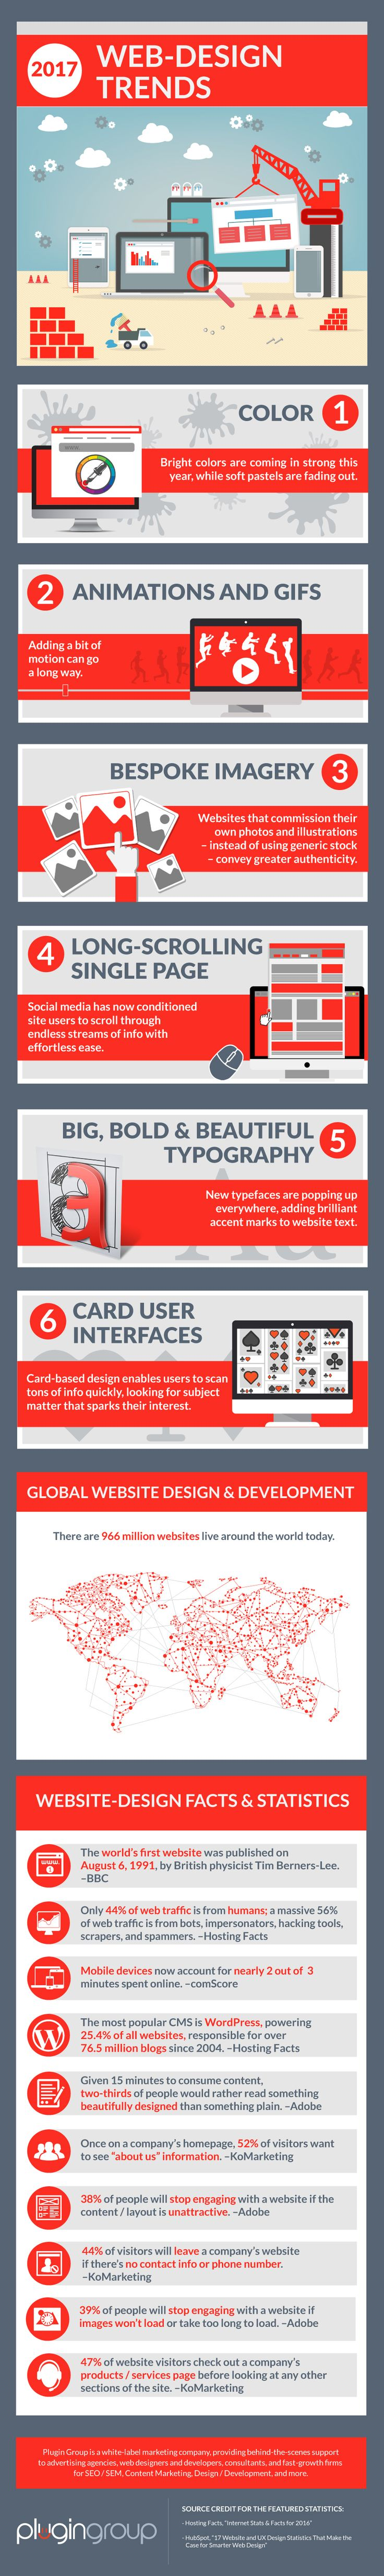 6 Modern Trends to Consider When Creating a New Website #Infographic #WebDesign